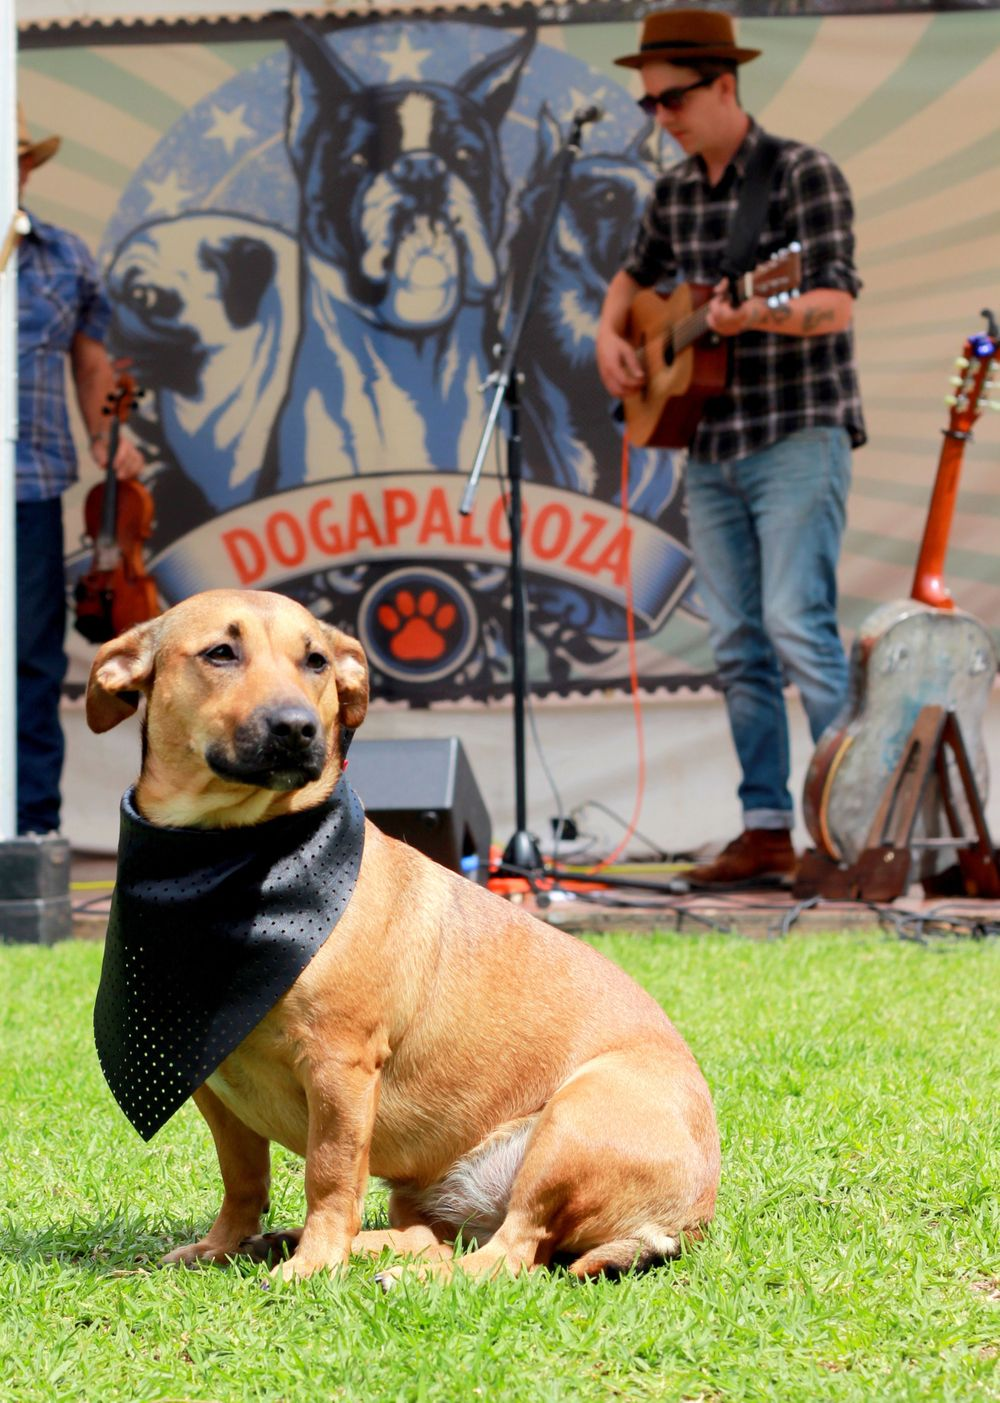 Pet Photographer with posing pooch at Dogapalooza in Adelaide